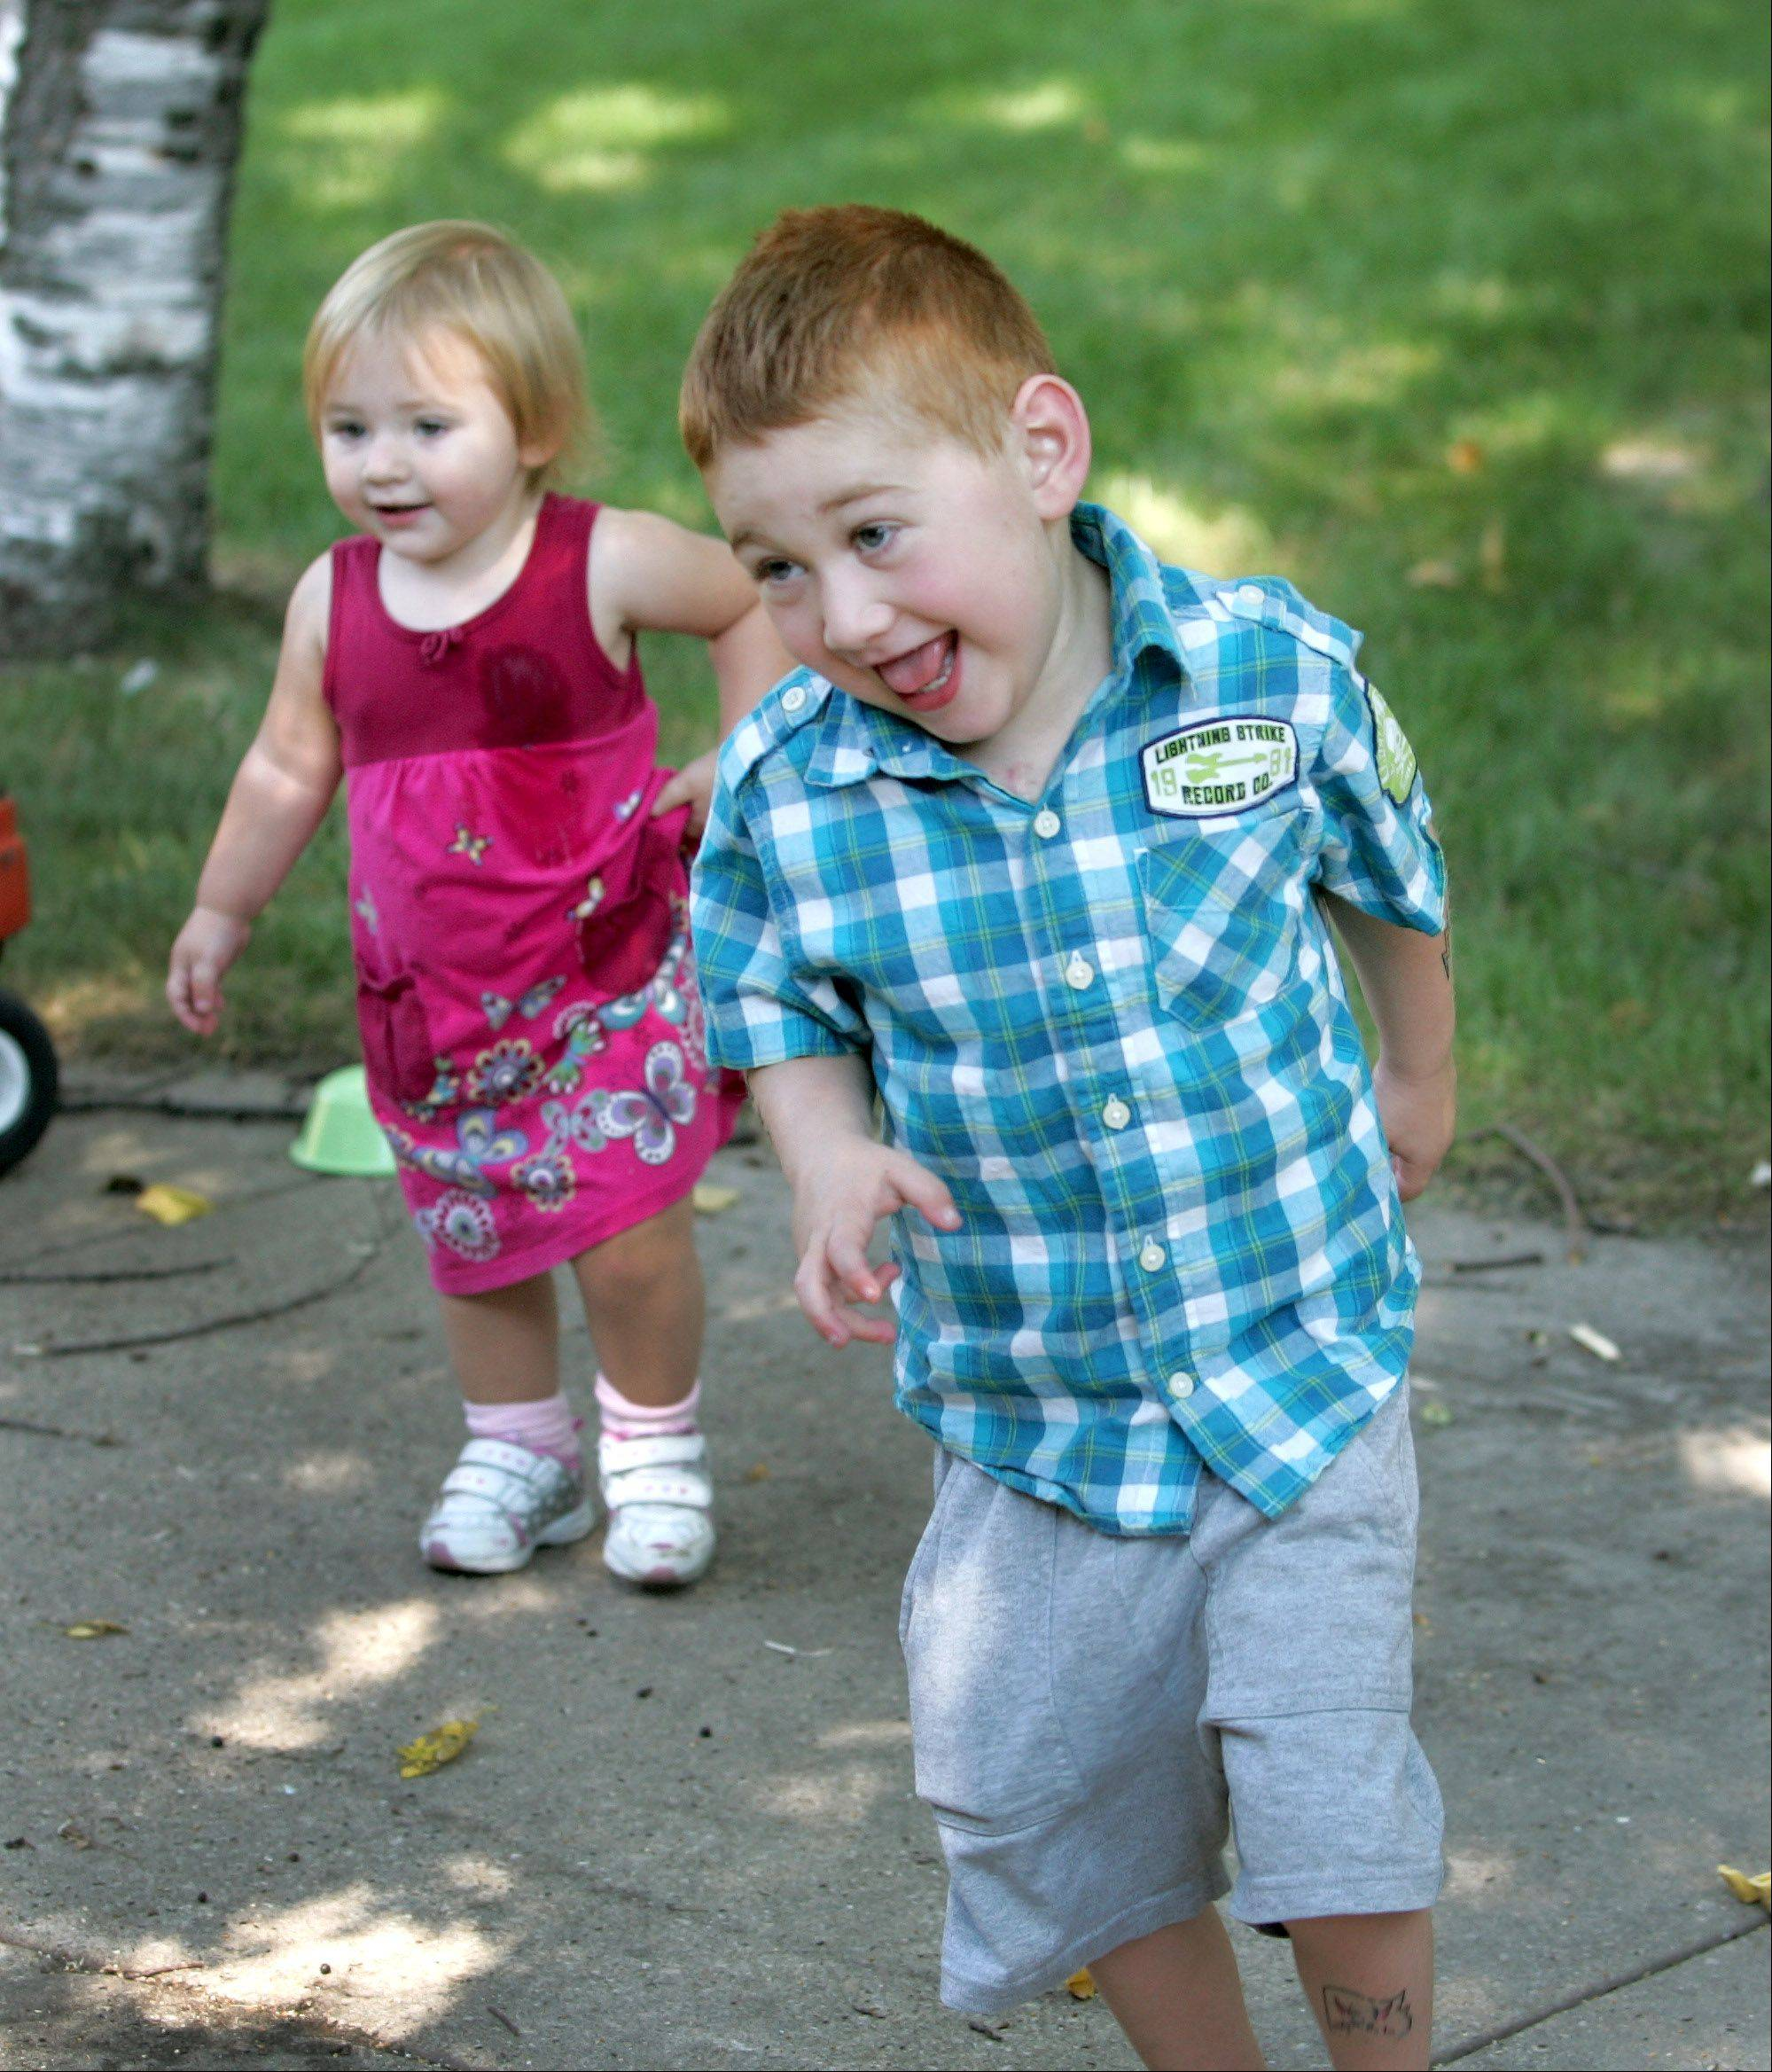 Tim Grobart, 5, of Lombard, plays outside Friday with his 18-month-old sister Rosie. Tim, who was diagnosed with a rare heart defect at 4 months old, underwent the first heart transplant at the new Lurie Children's Hospital in Chicago.